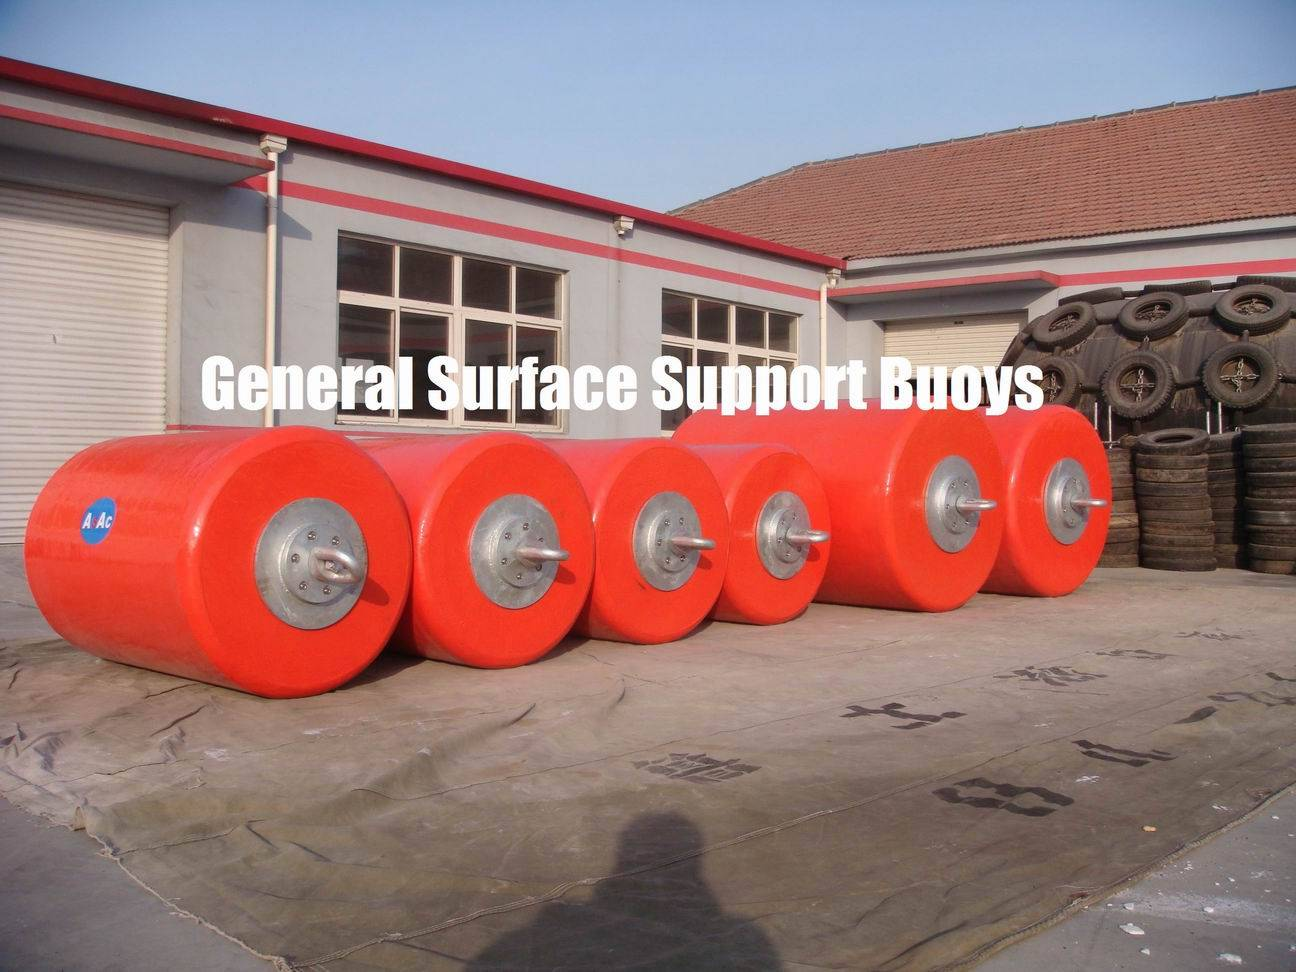 Surface Buoyancy, Cylindrical Buoy, EVA foam structure and removable Clevis Plate/Eye.